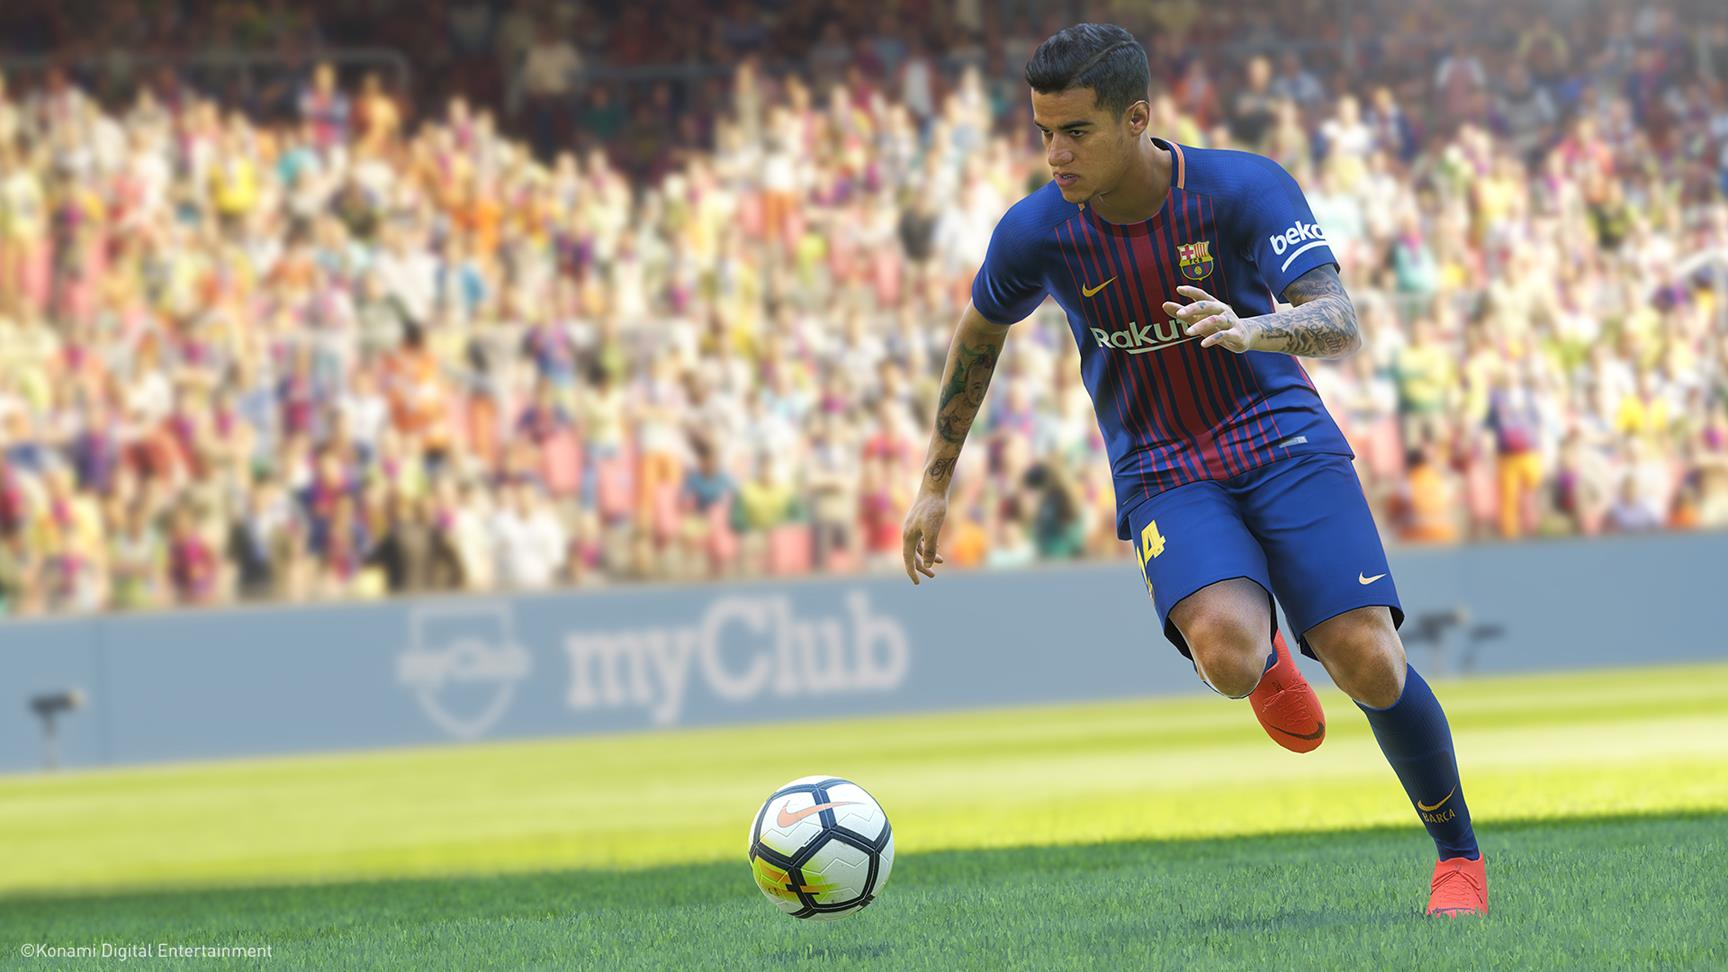 pes 2019 demo, pro evolution soccer, konami, game on, videojáték, demo, retro adás